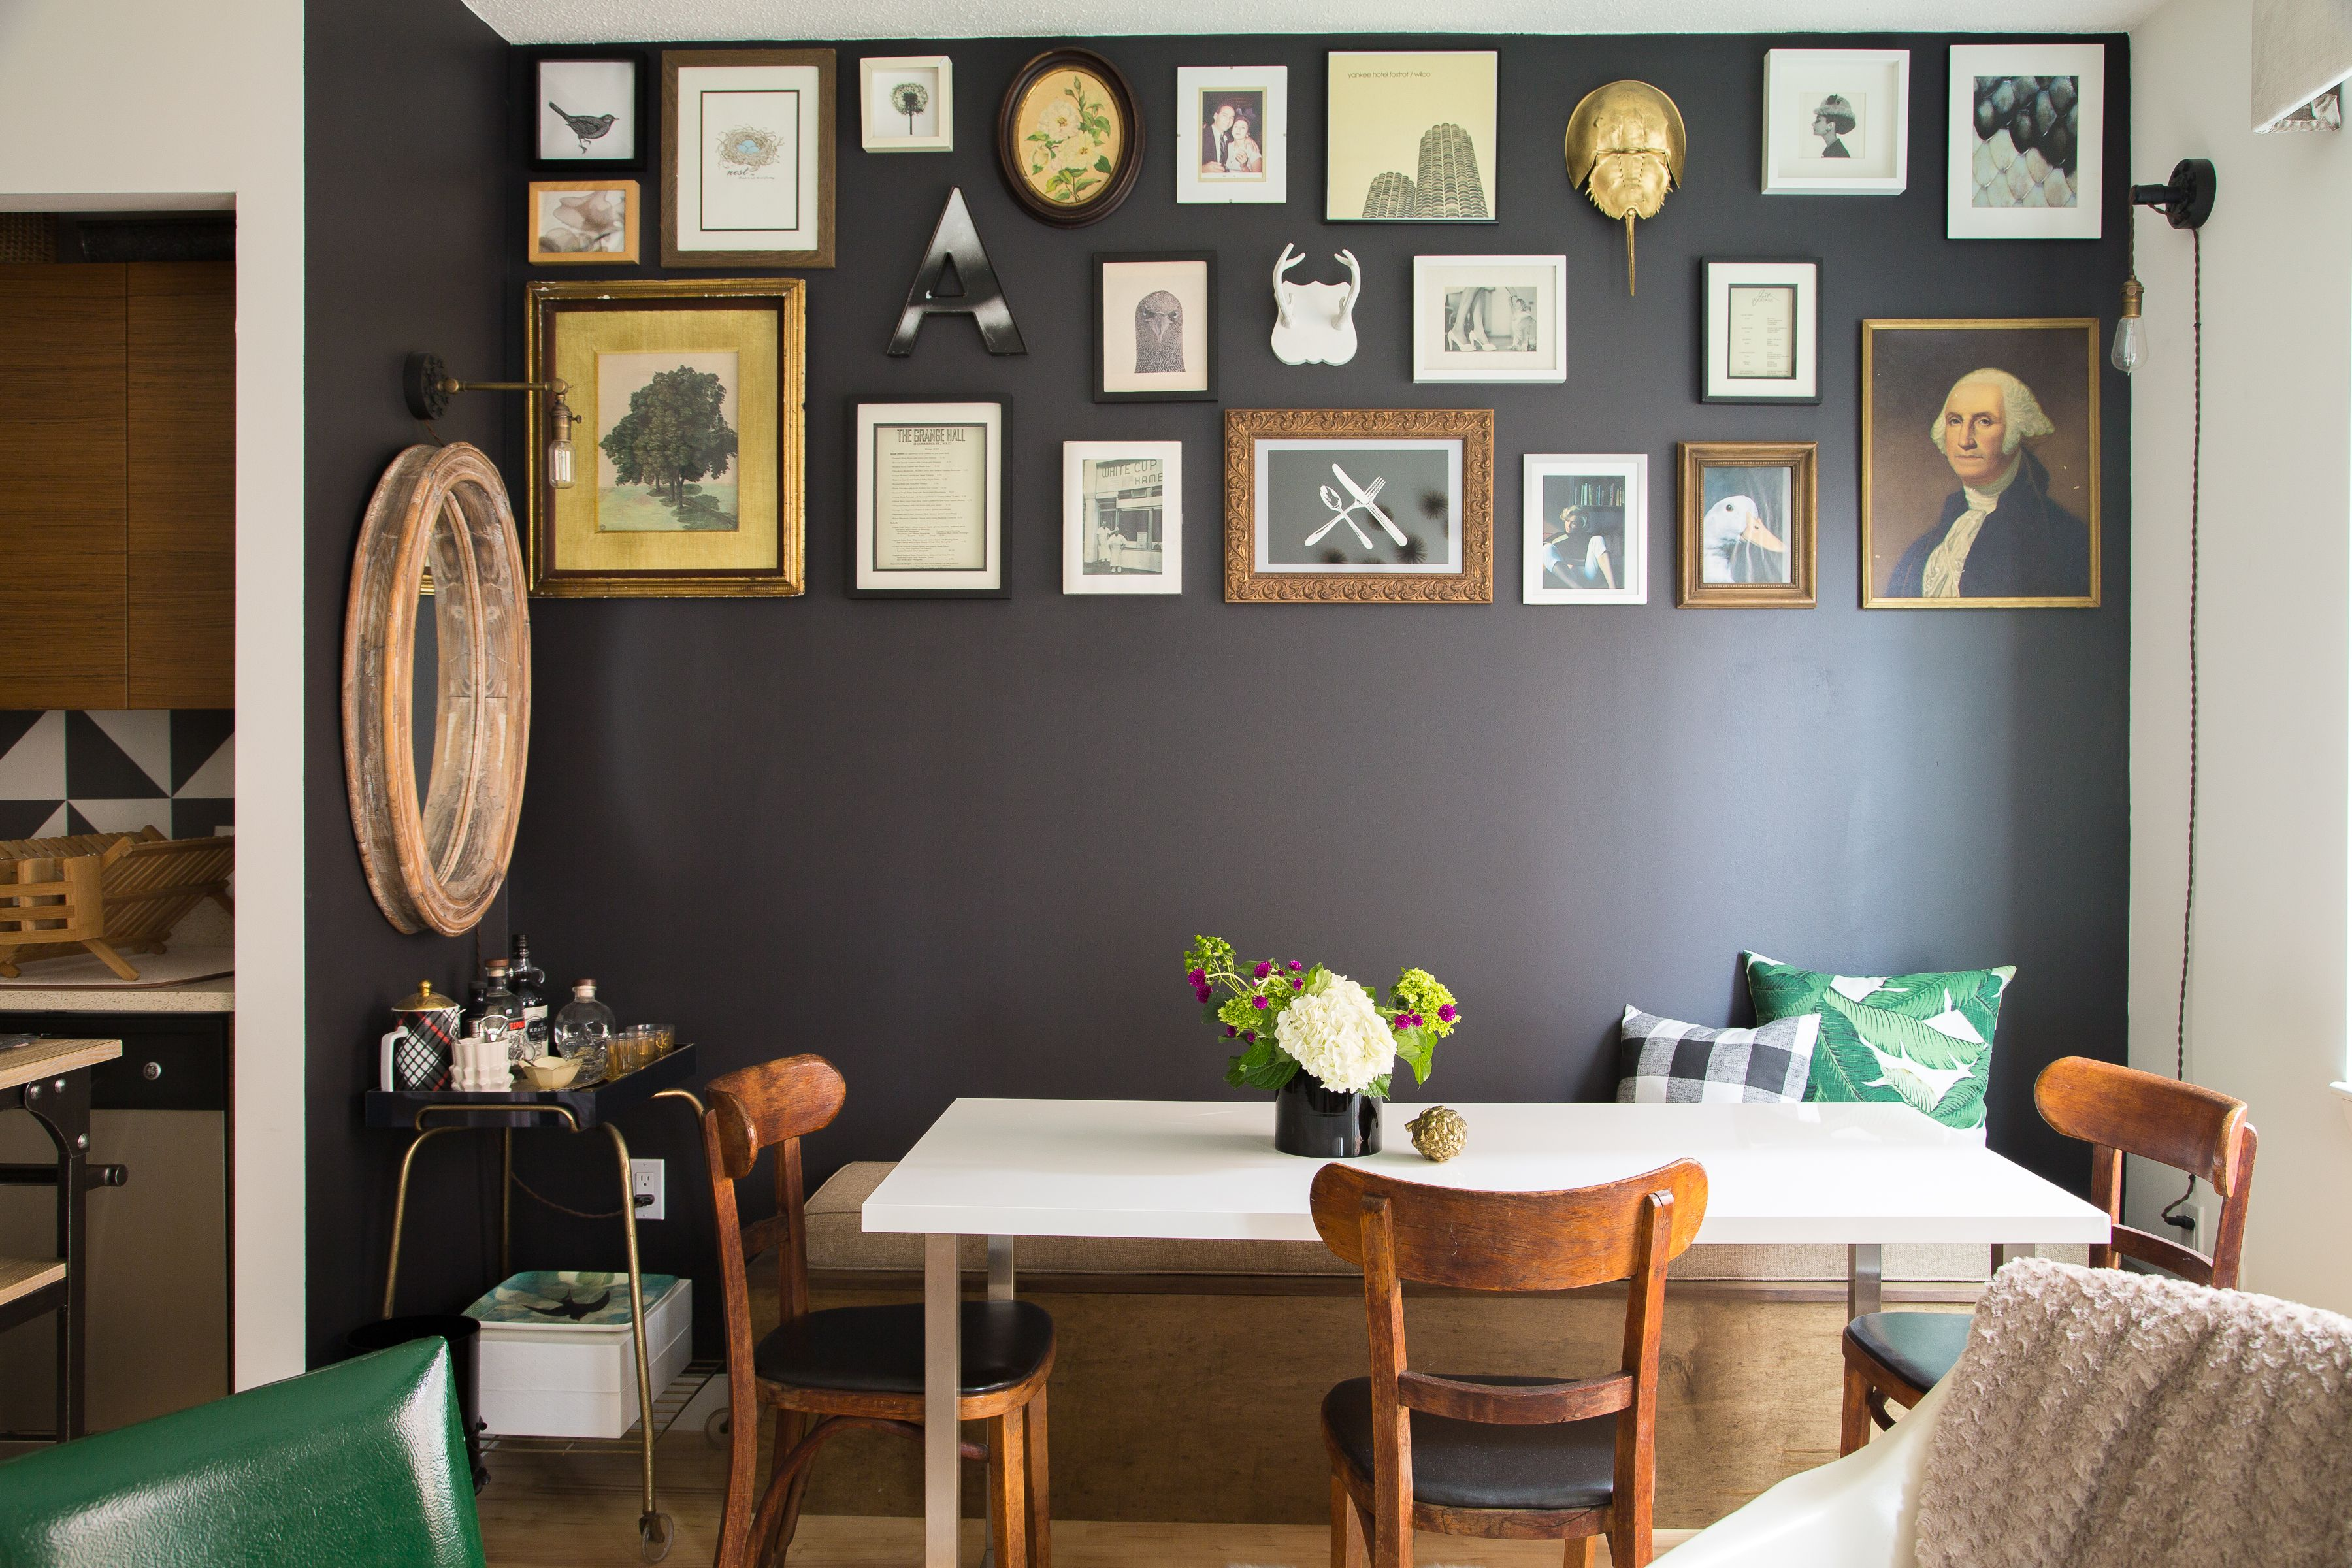 Perfect 70 Of The Coziest, Most Inspiring Dining Rooms Of All Time Photo Gallery